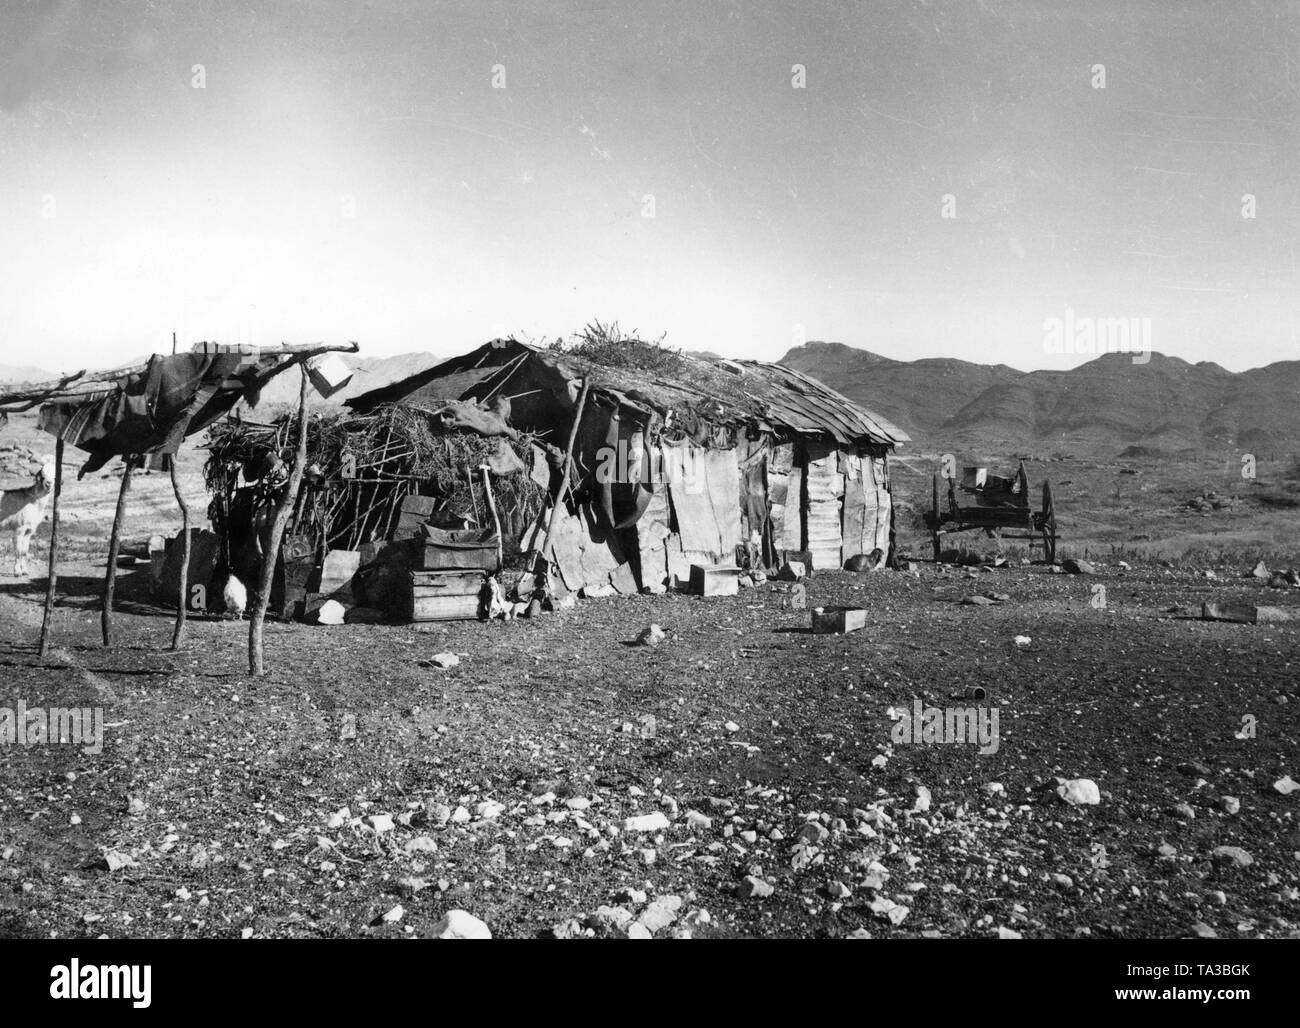 Pondoks, traditional dwellings of Damara people, in the open field in front of a ridge in the region of the former German colony German Southwest Africa. Next to the pondok is a wooden cart. The settlement is located in the Auesbergen on the grounds of a farm operated by Germans. - Stock Image